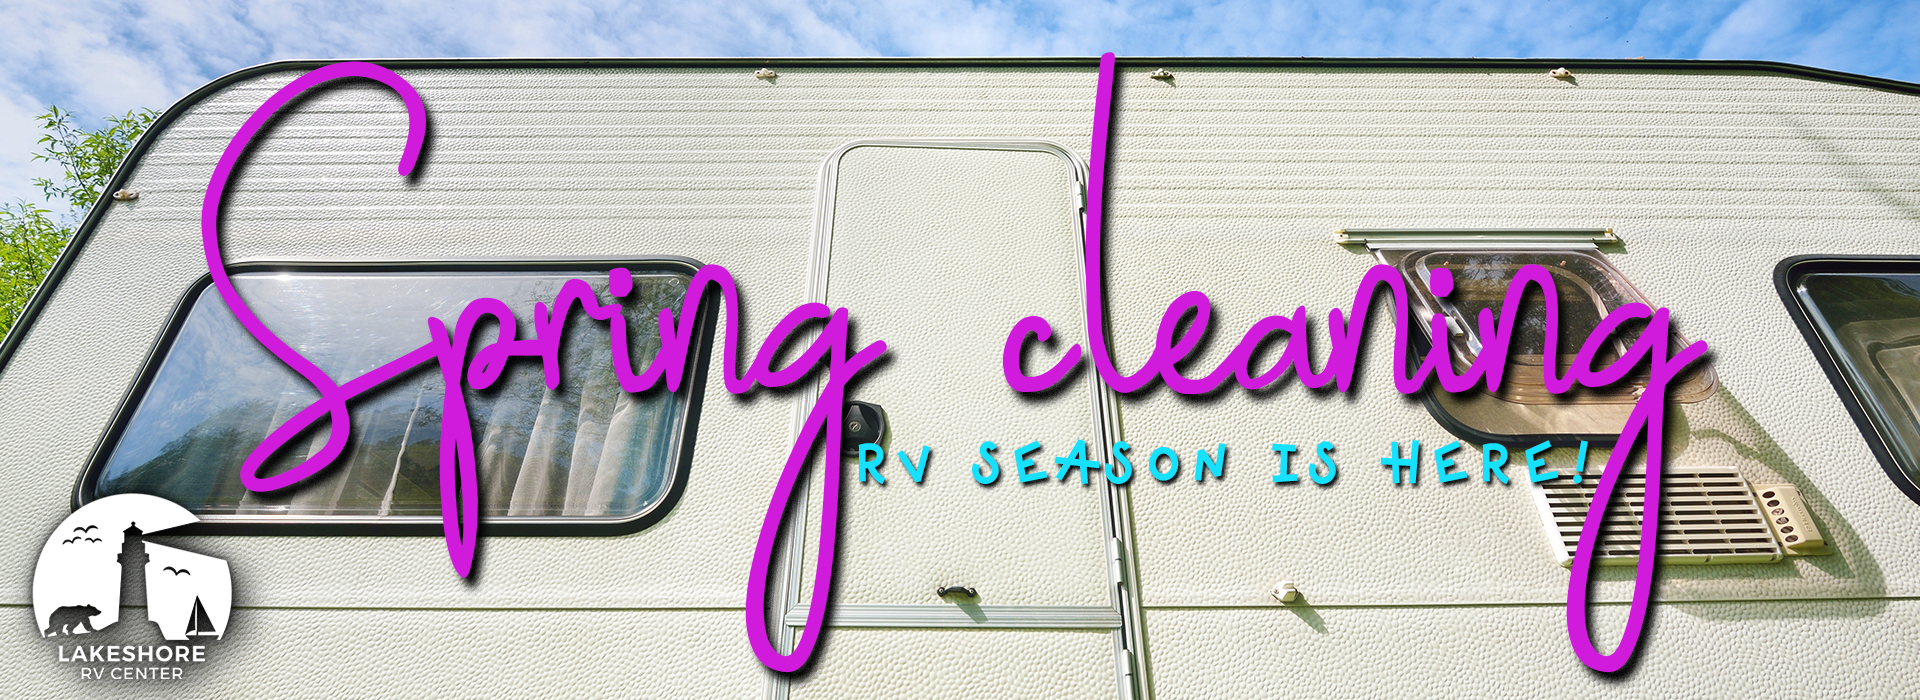 Spring cleaning - RV Season is here!